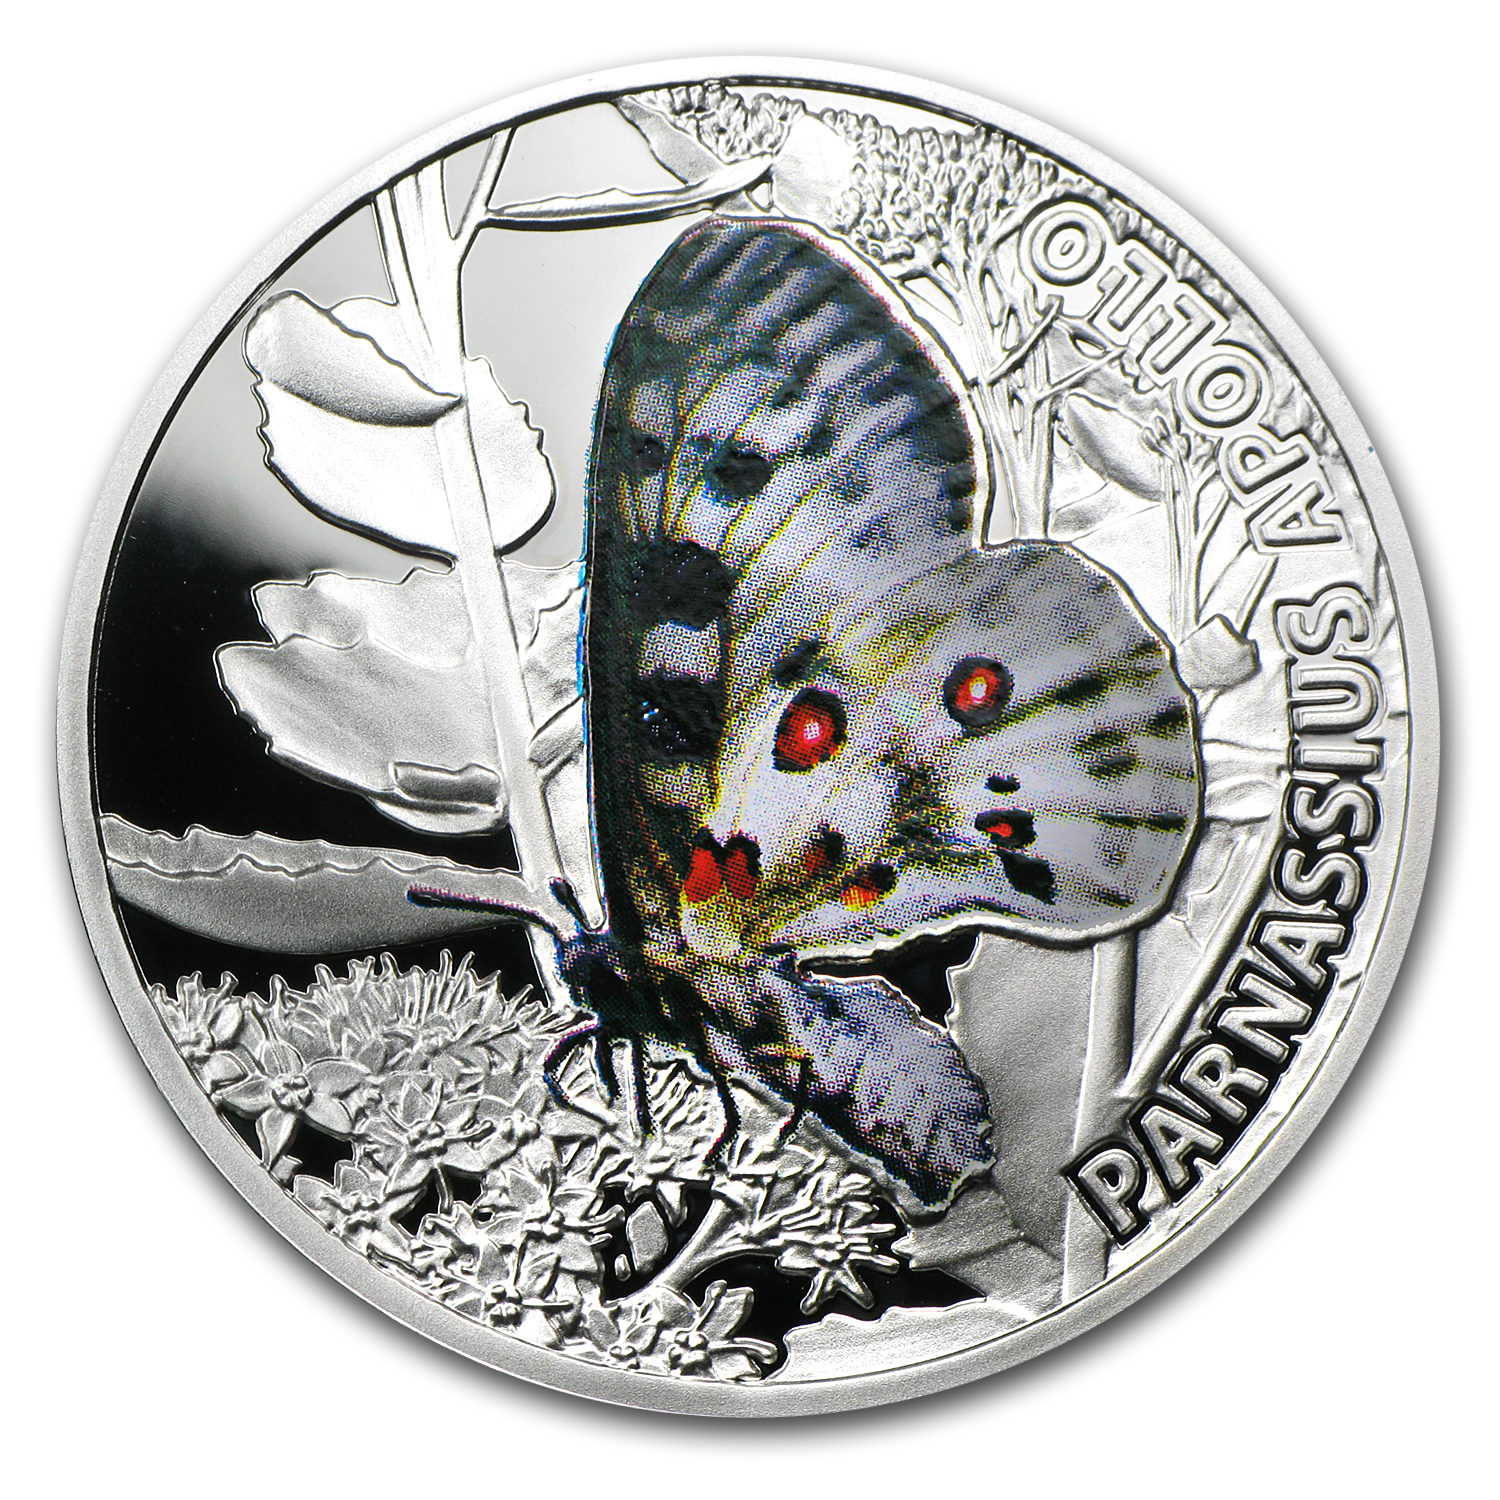 Niue 2010 Proof Silver $1 Butterflies (Apollo)